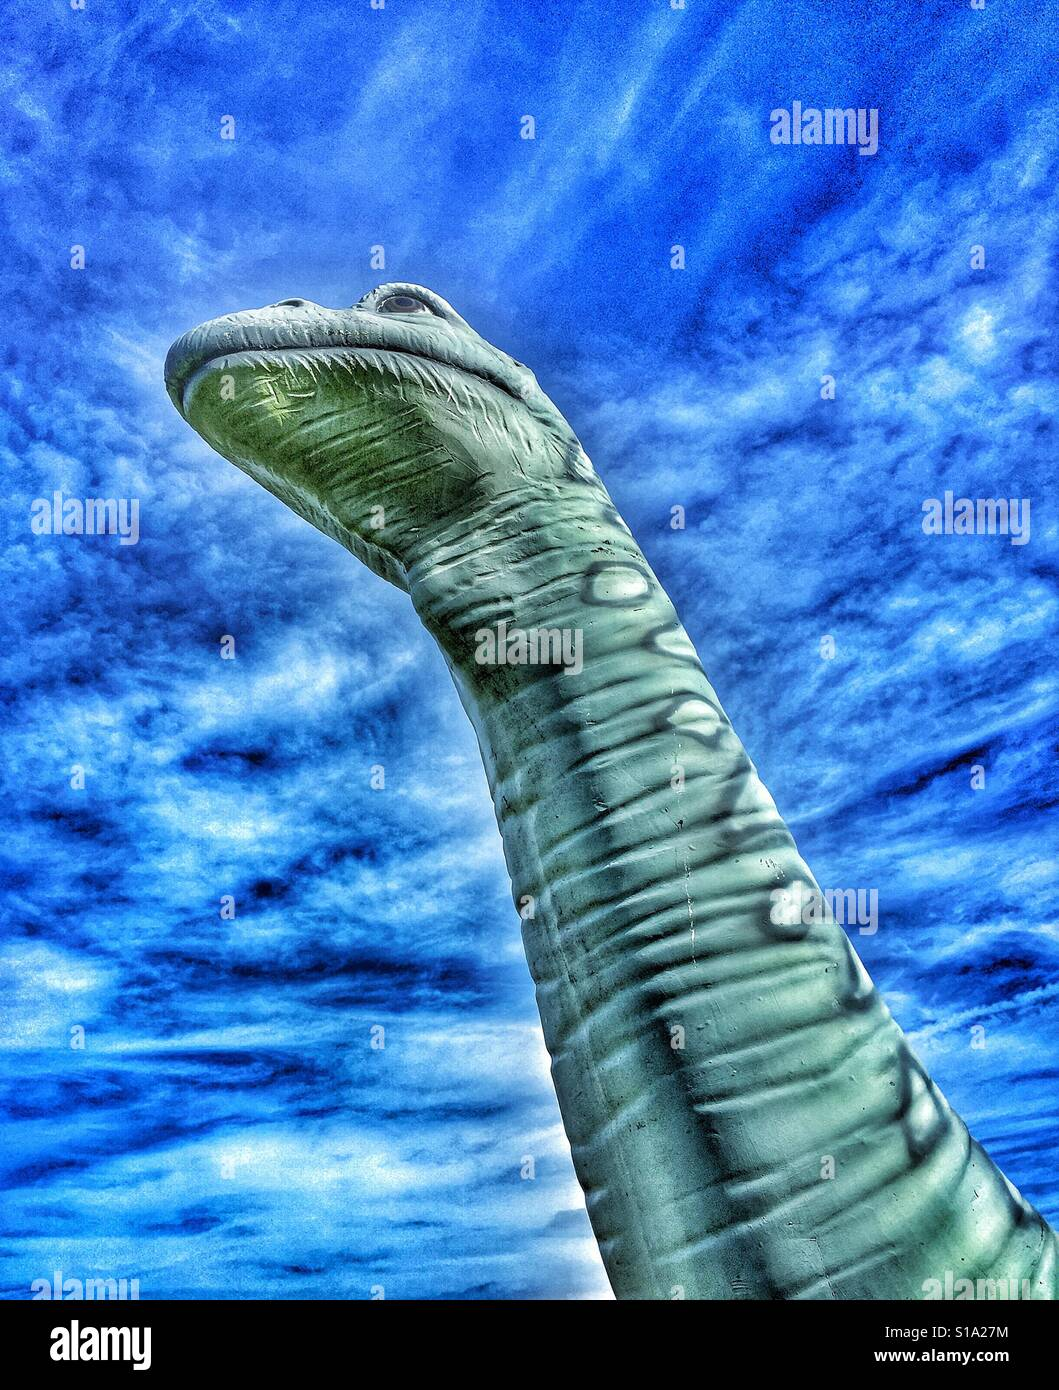 A colour iPhone photograph of a model Brachiosaurus (Sauropod) Dinosaur. This type of Dinosaur had a long neck and - Stock Image